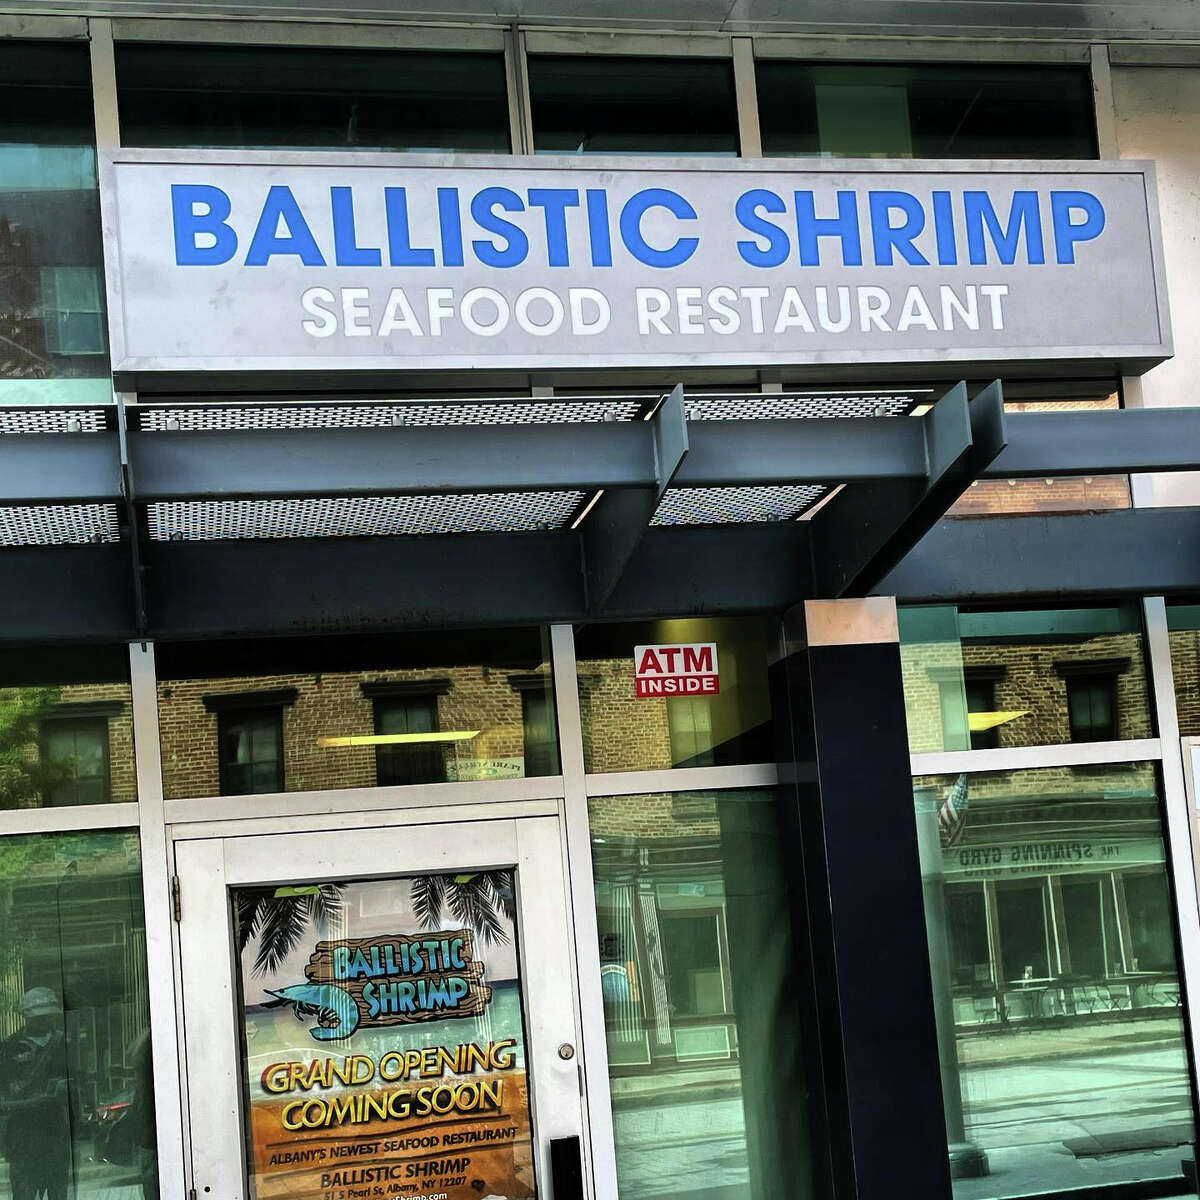 Ballistic Shrimp opened in one of the storefronts along South Pearl Street at the Times Union Center in Albany. It takes over a location previously occupied by Dallas Hot Wieners, which closed during the pandemic.